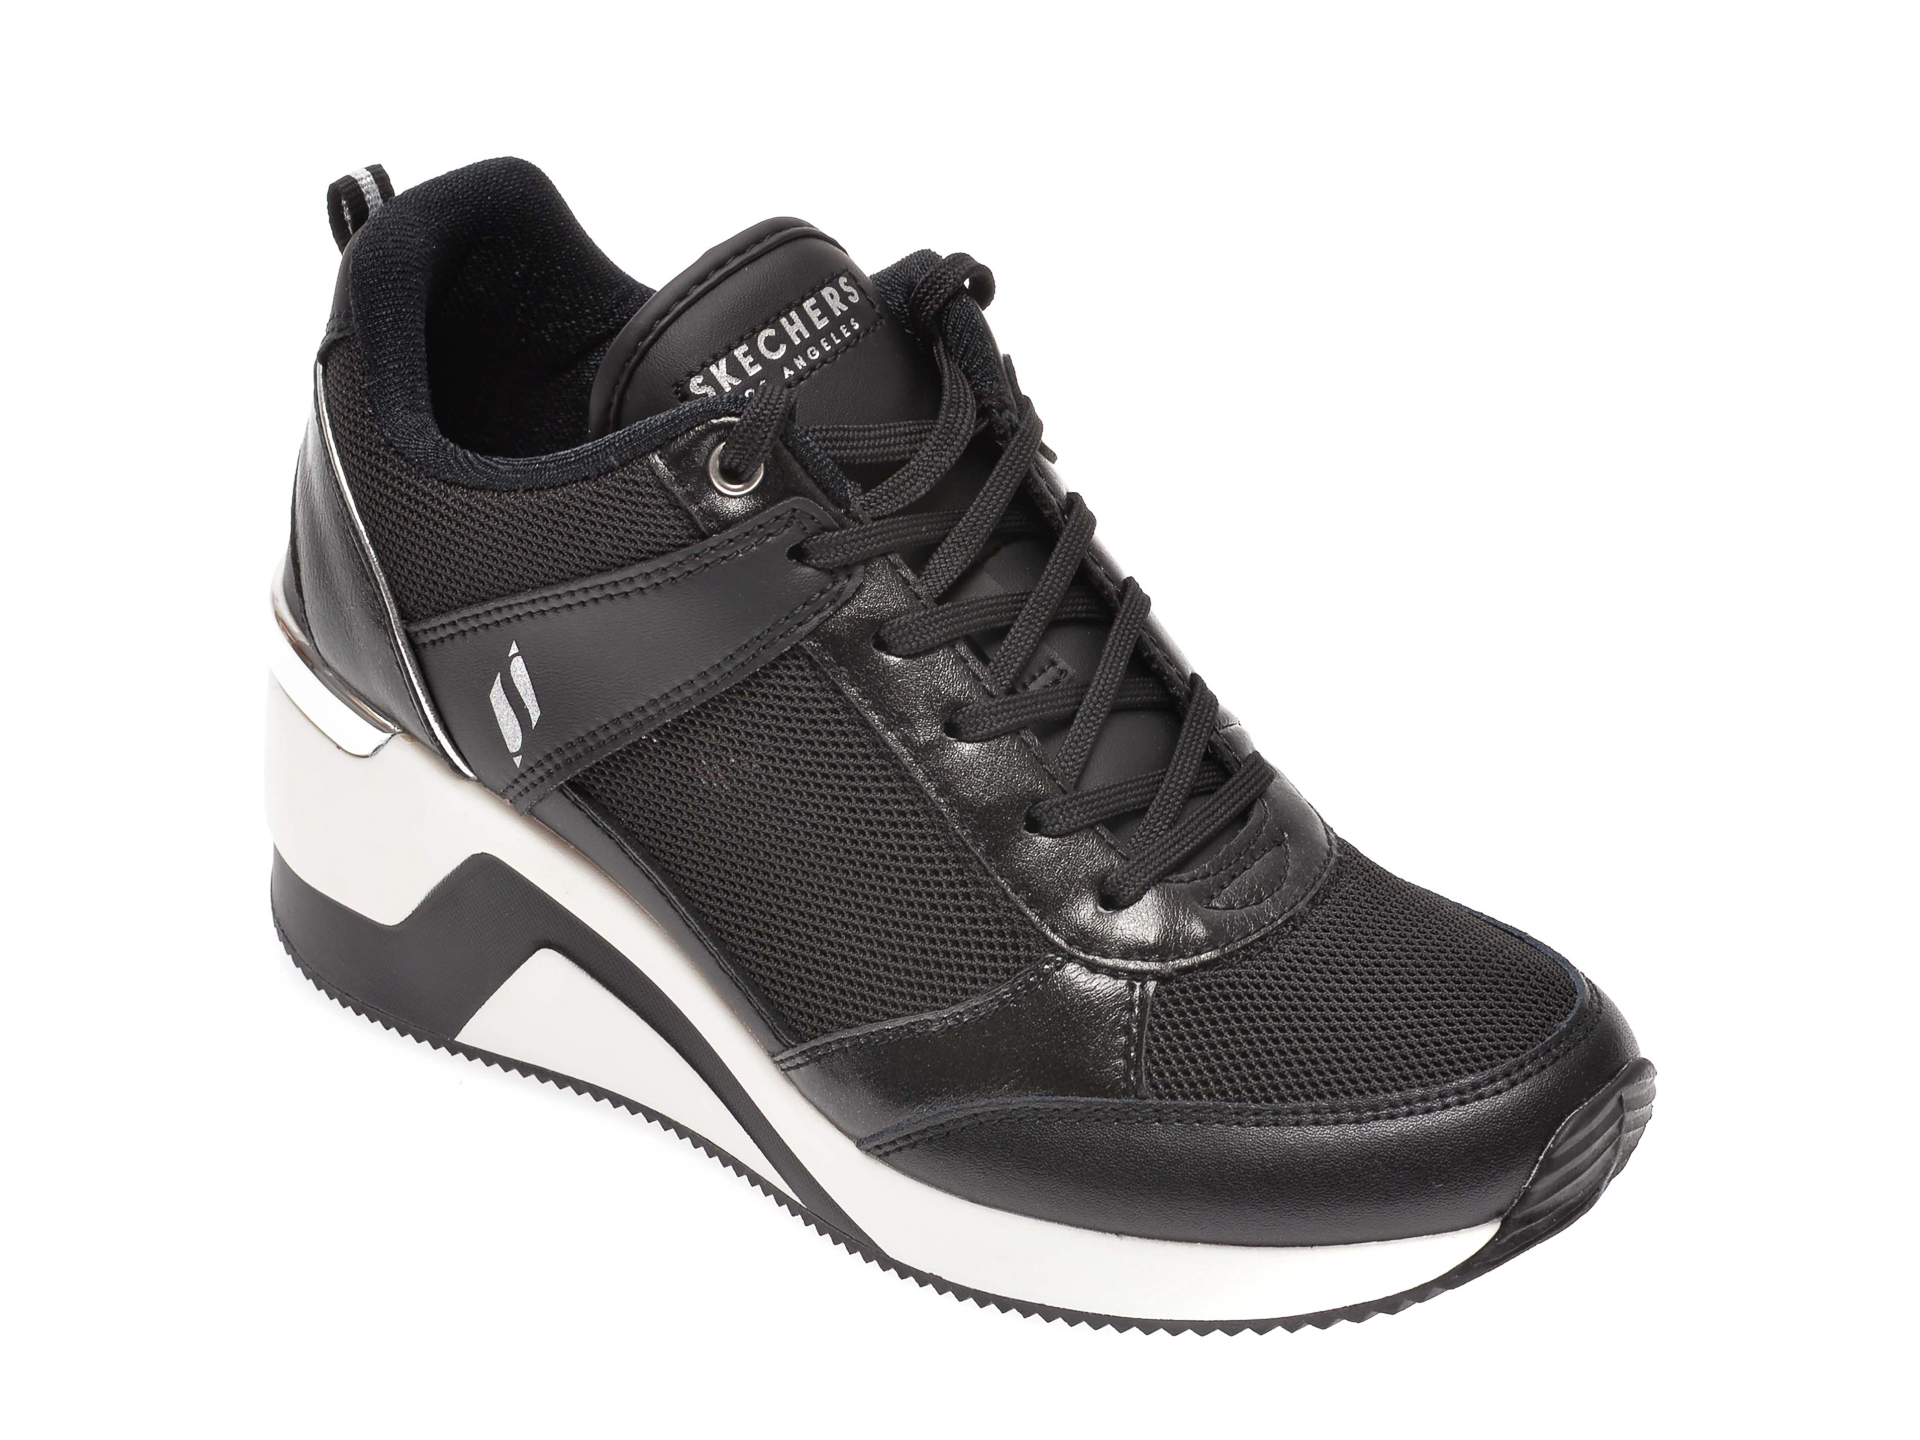 Pantofi SKECHERS negri, Million, din material textil imagine